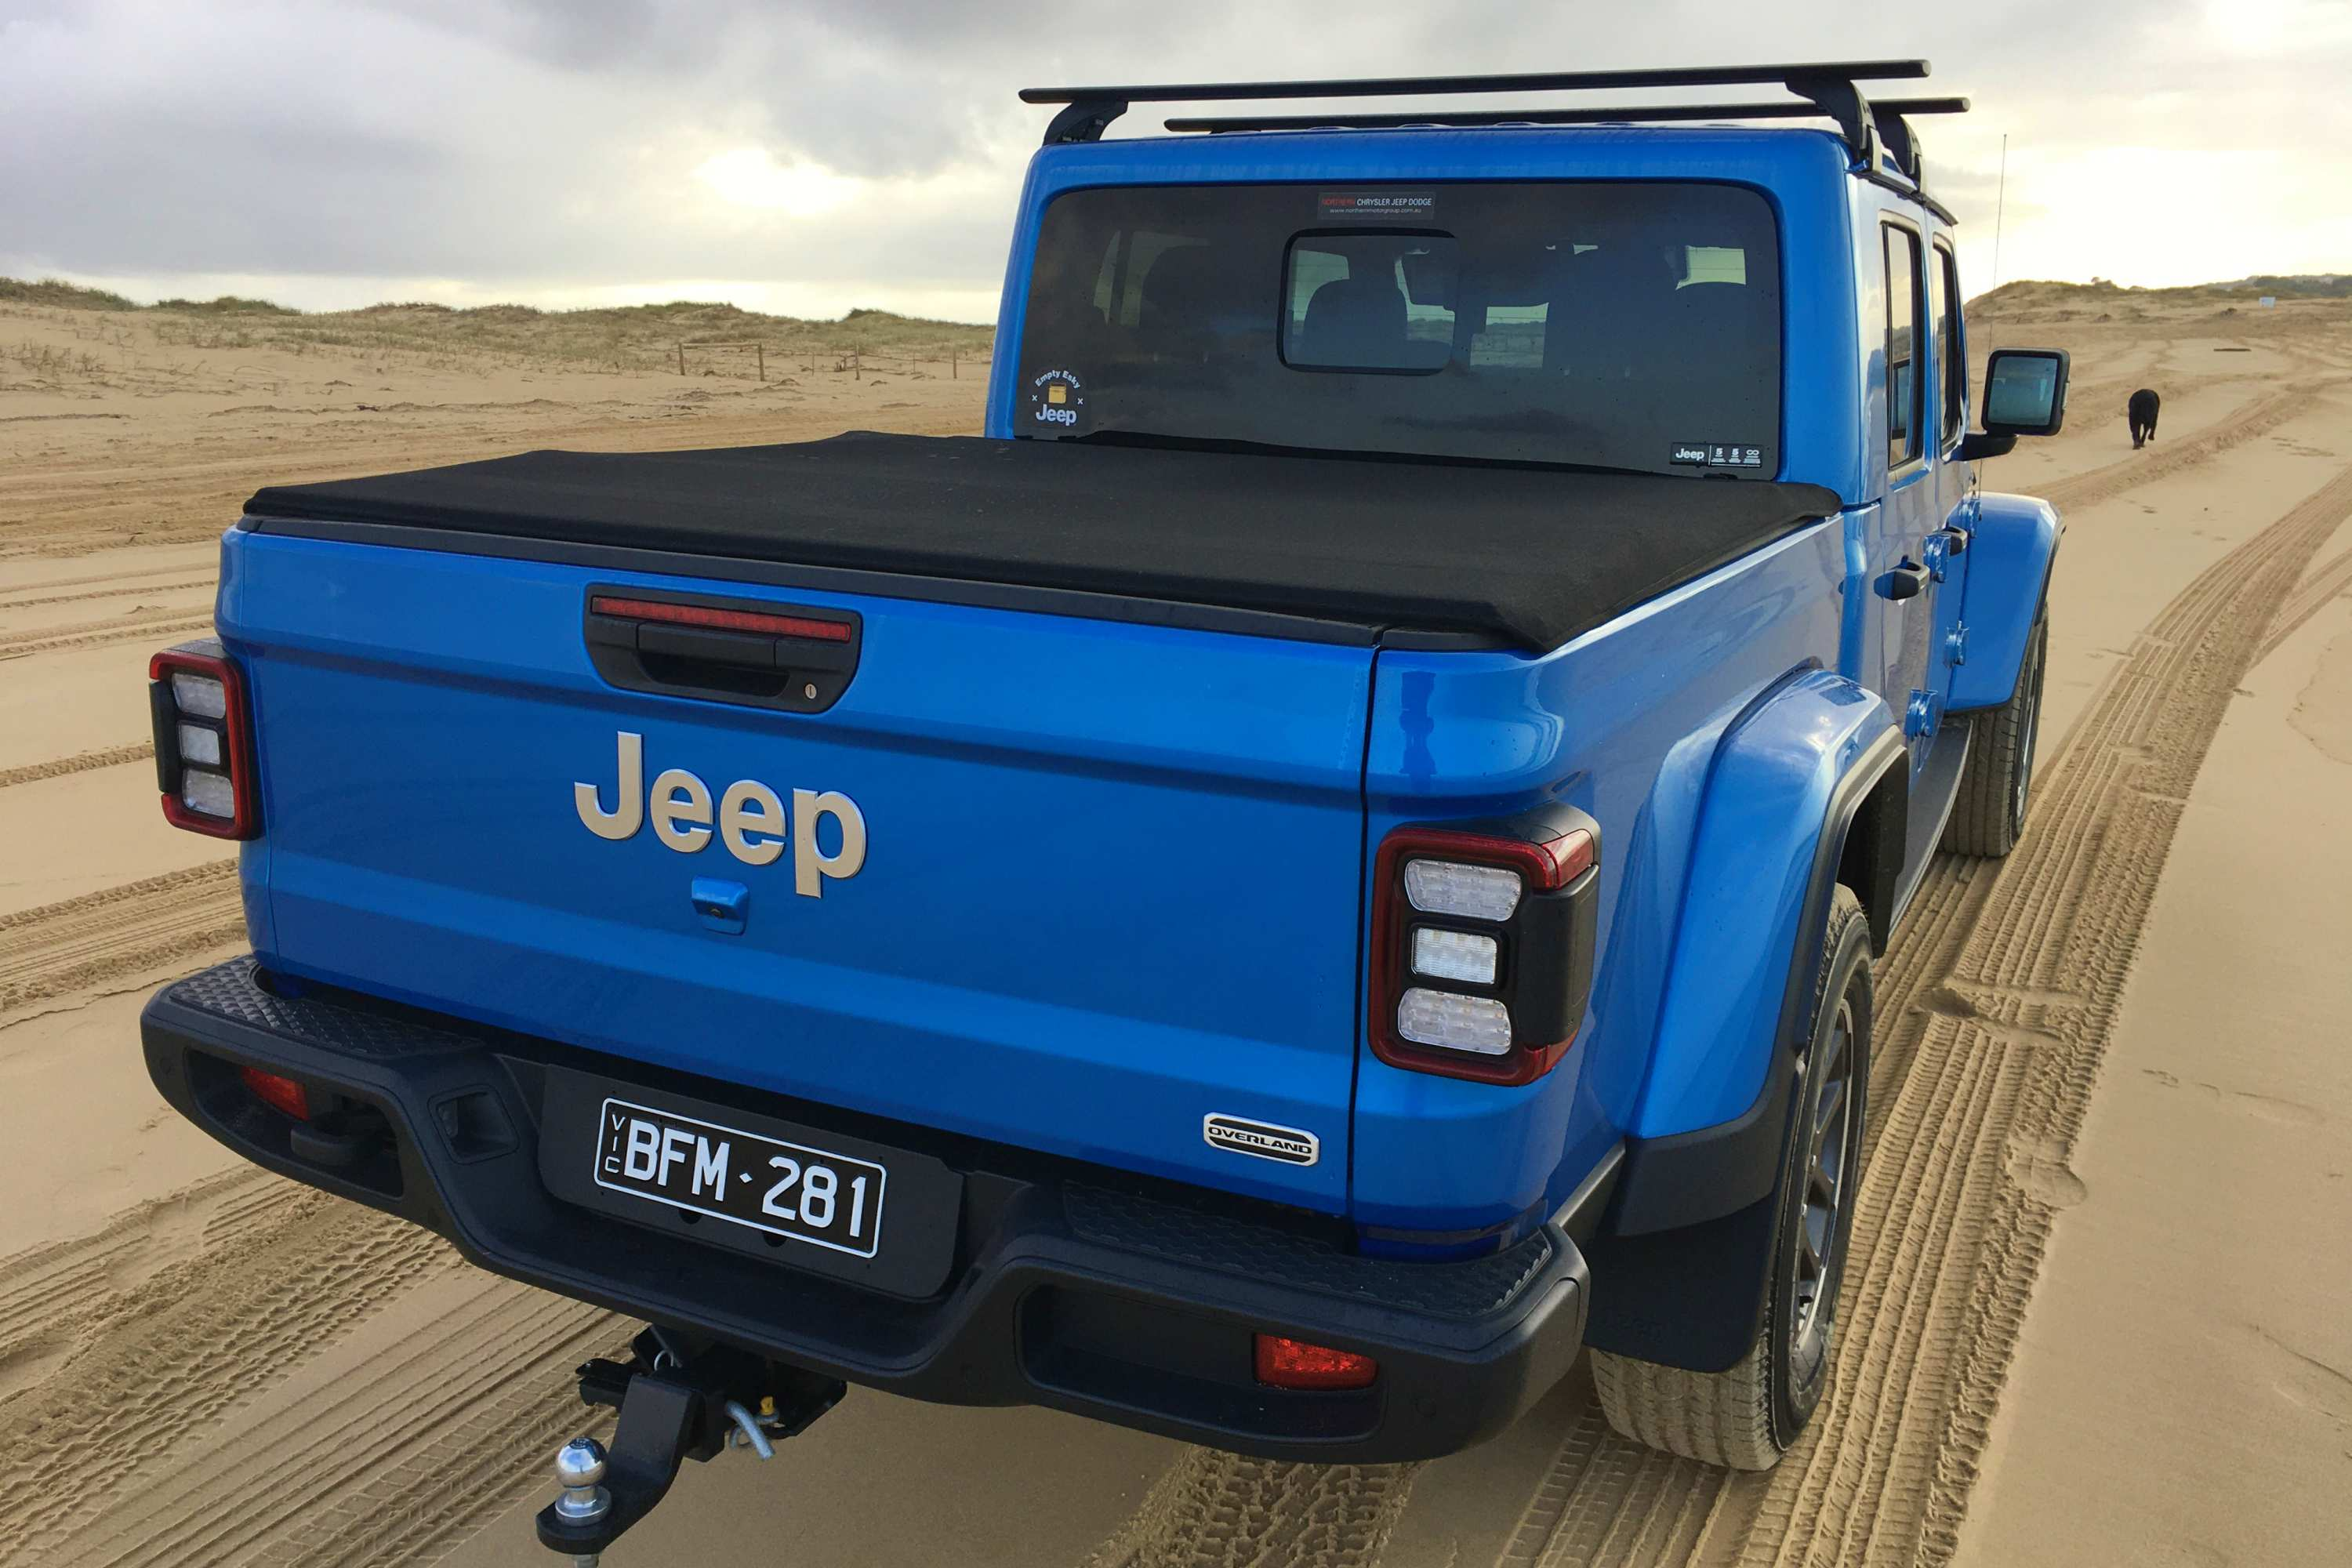 Jeep Gladiator Overland 4WD Ute rear 2